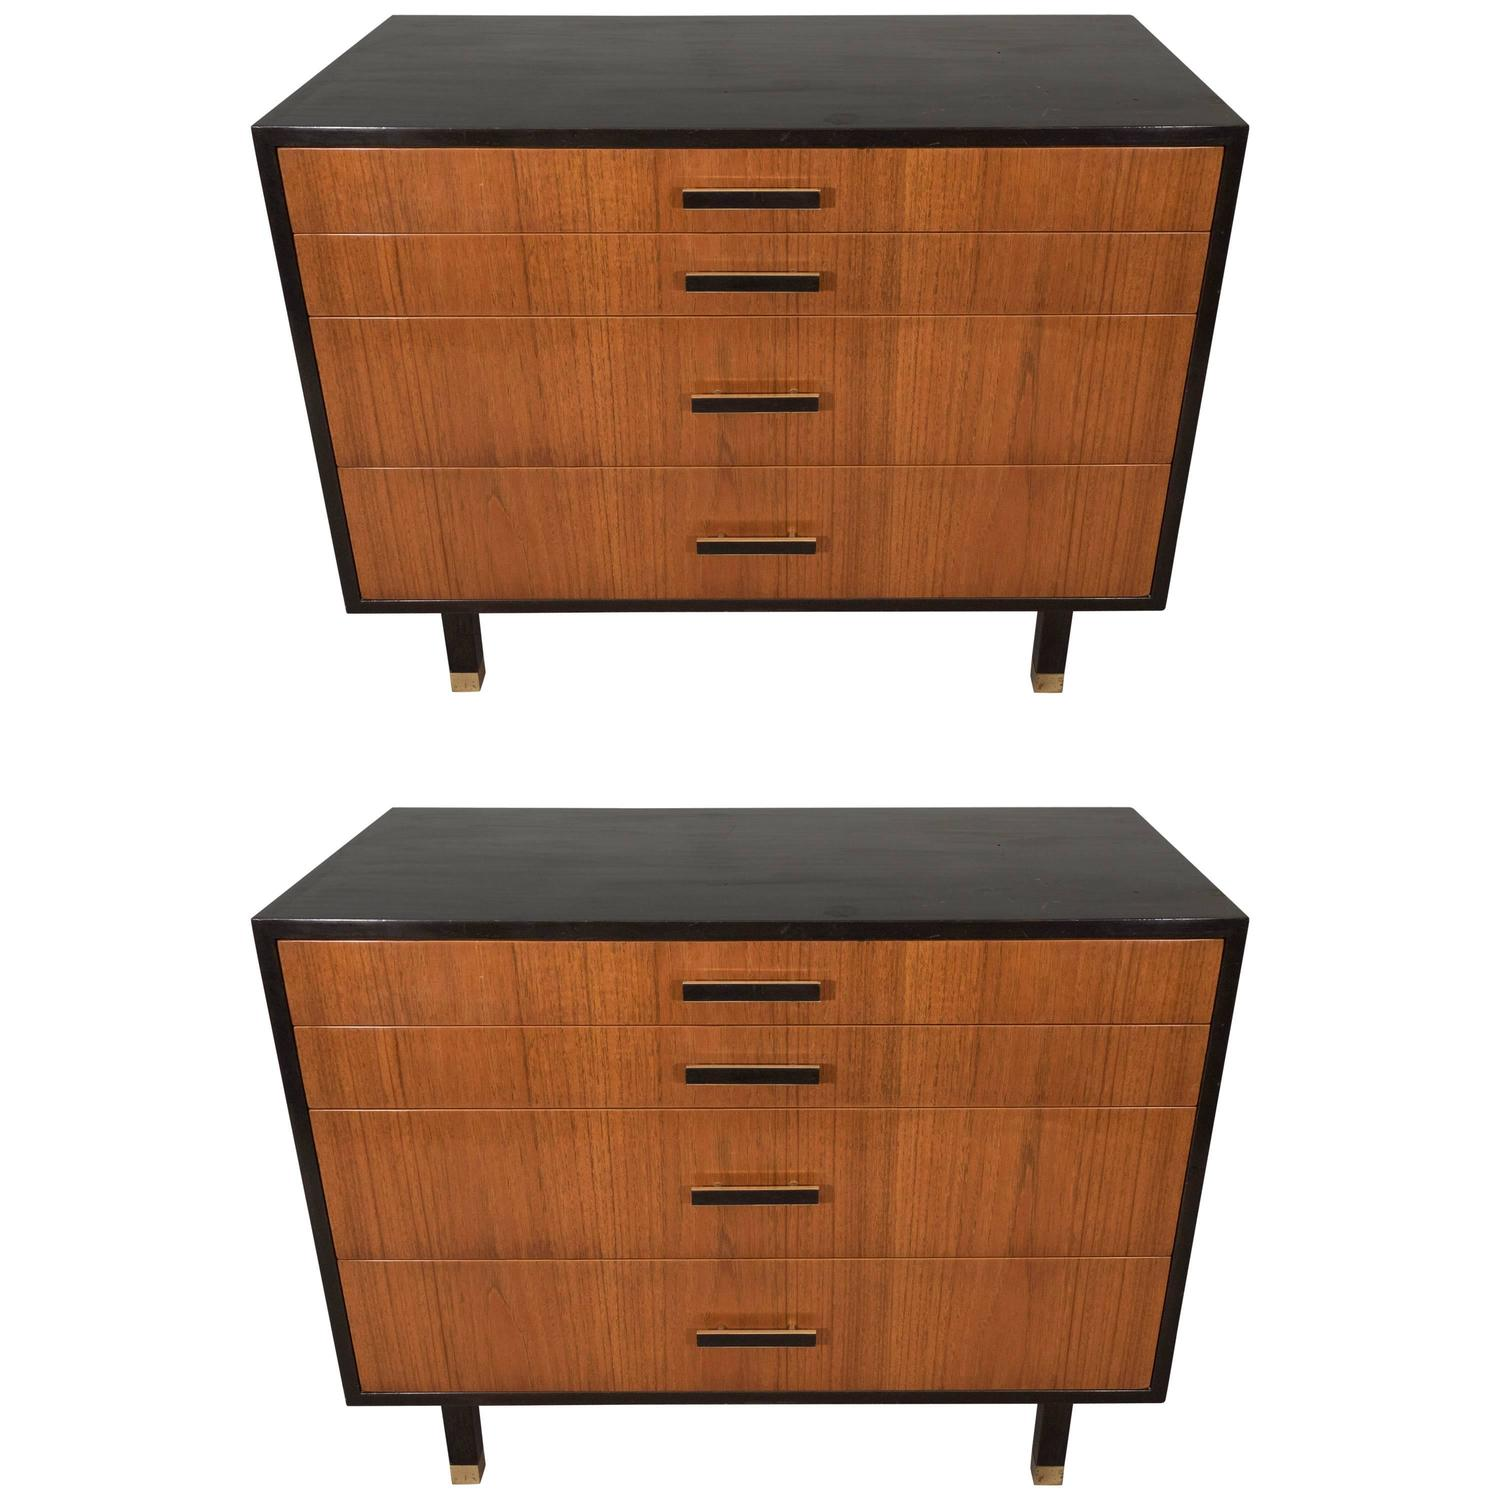 Pair Of Harvey Probber Dressers In Ebonized Wood And Walnut At 1stdibs